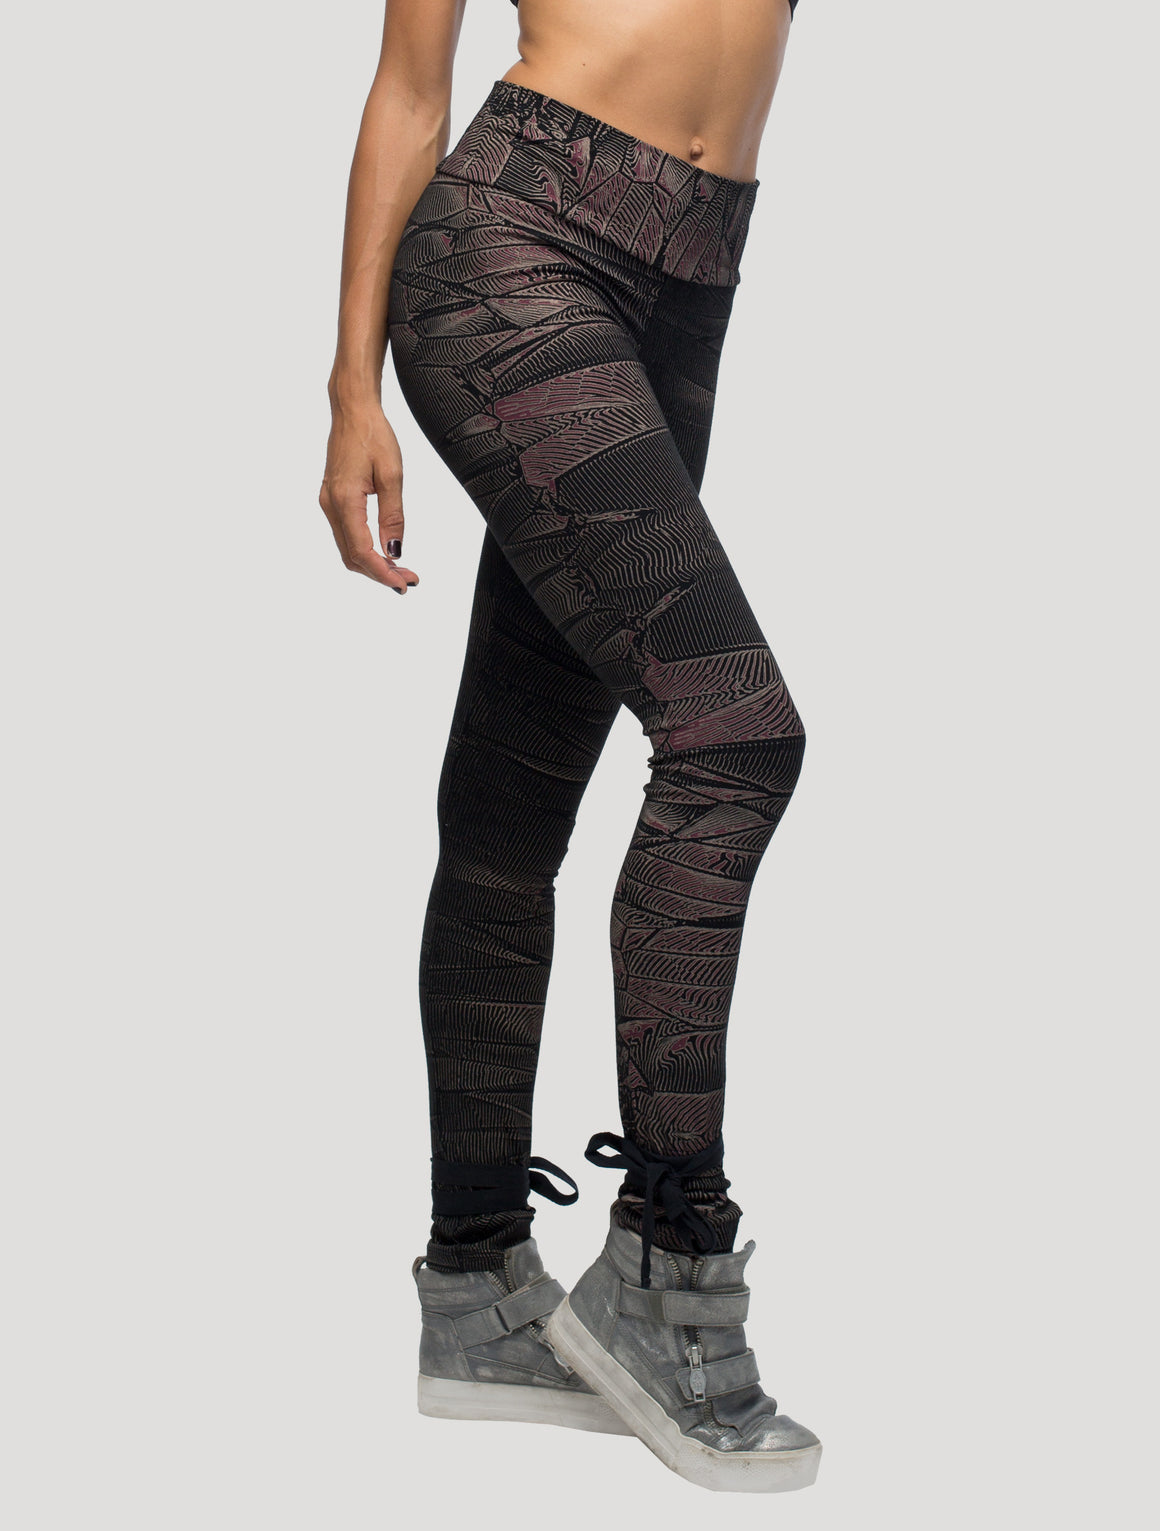 Crystal High Leggings